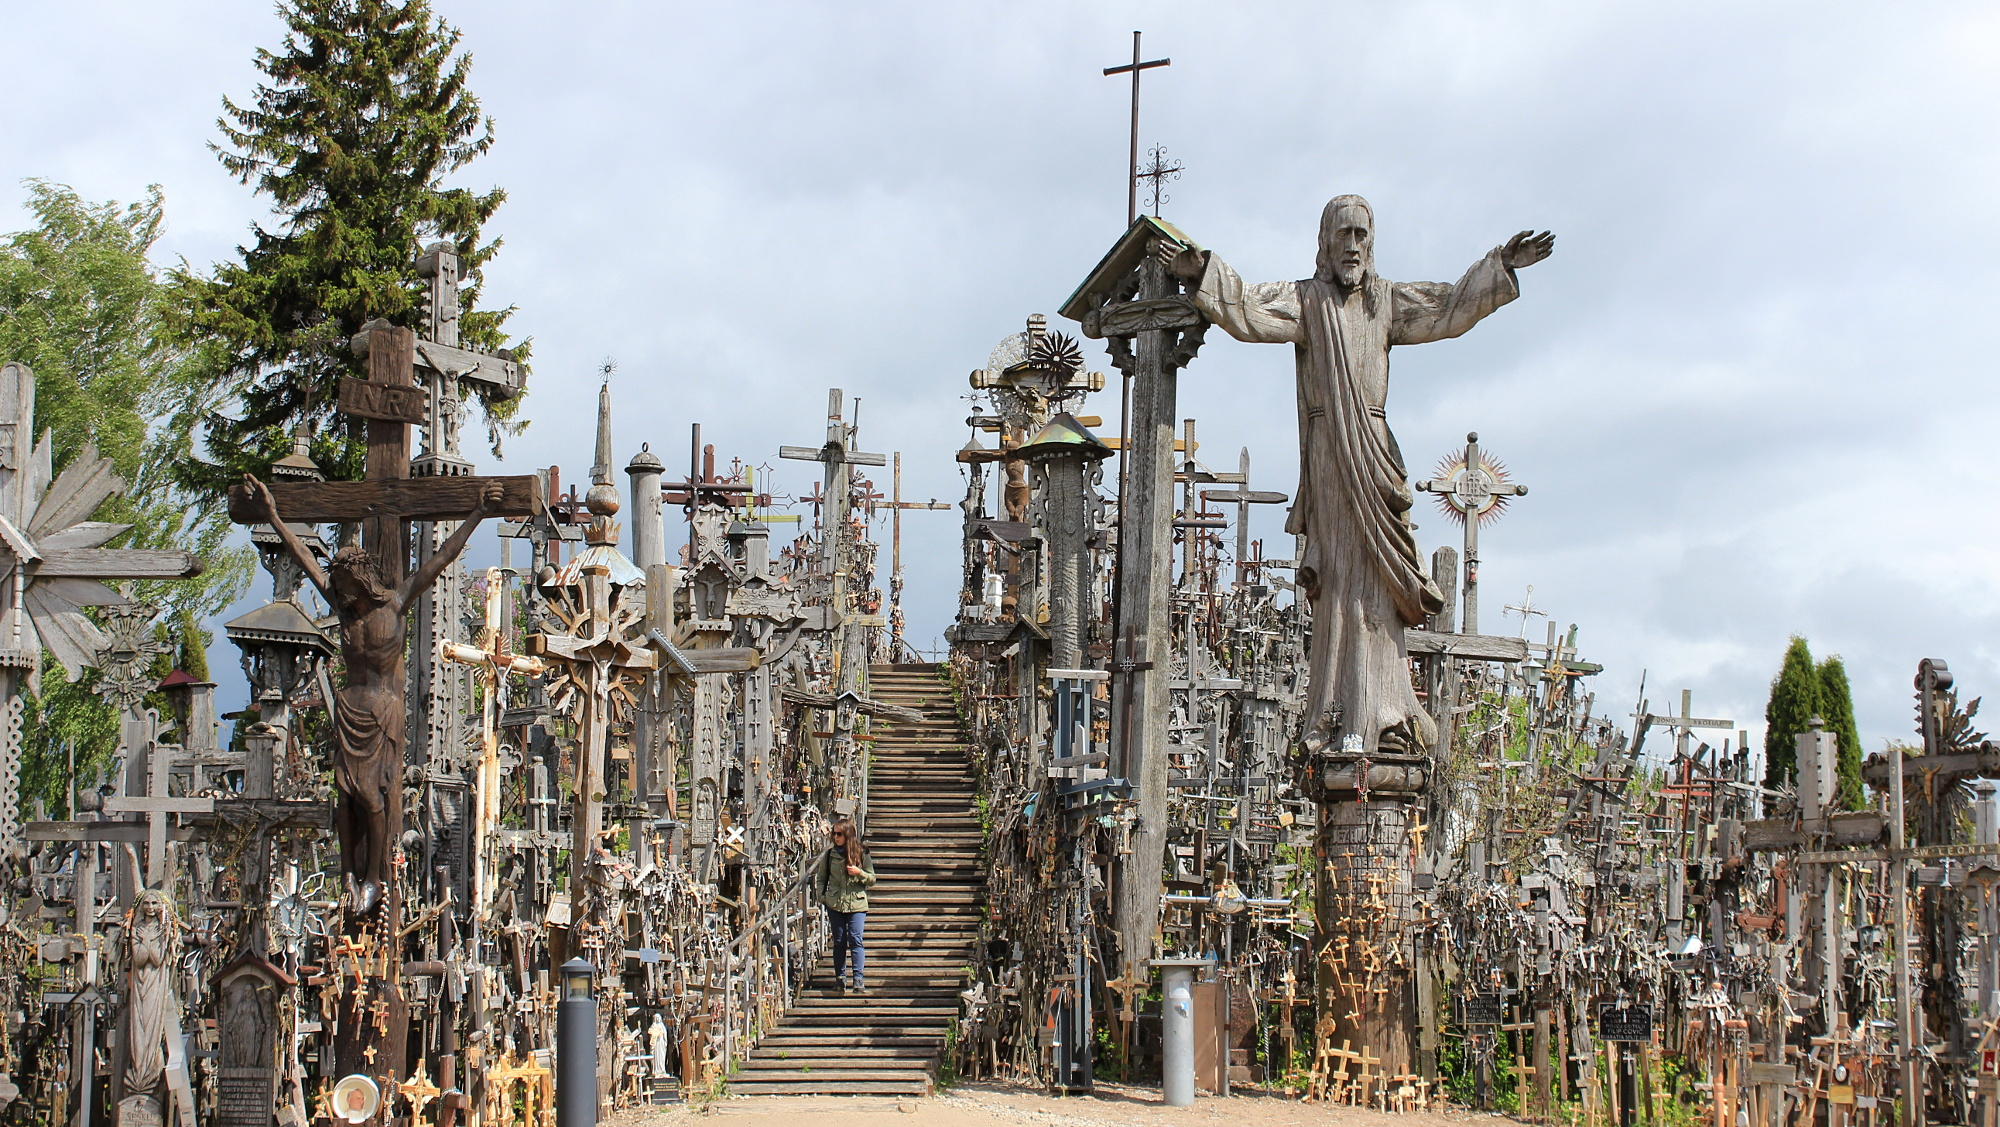 Thousands of crosses on a hill with a stairway in the middle.